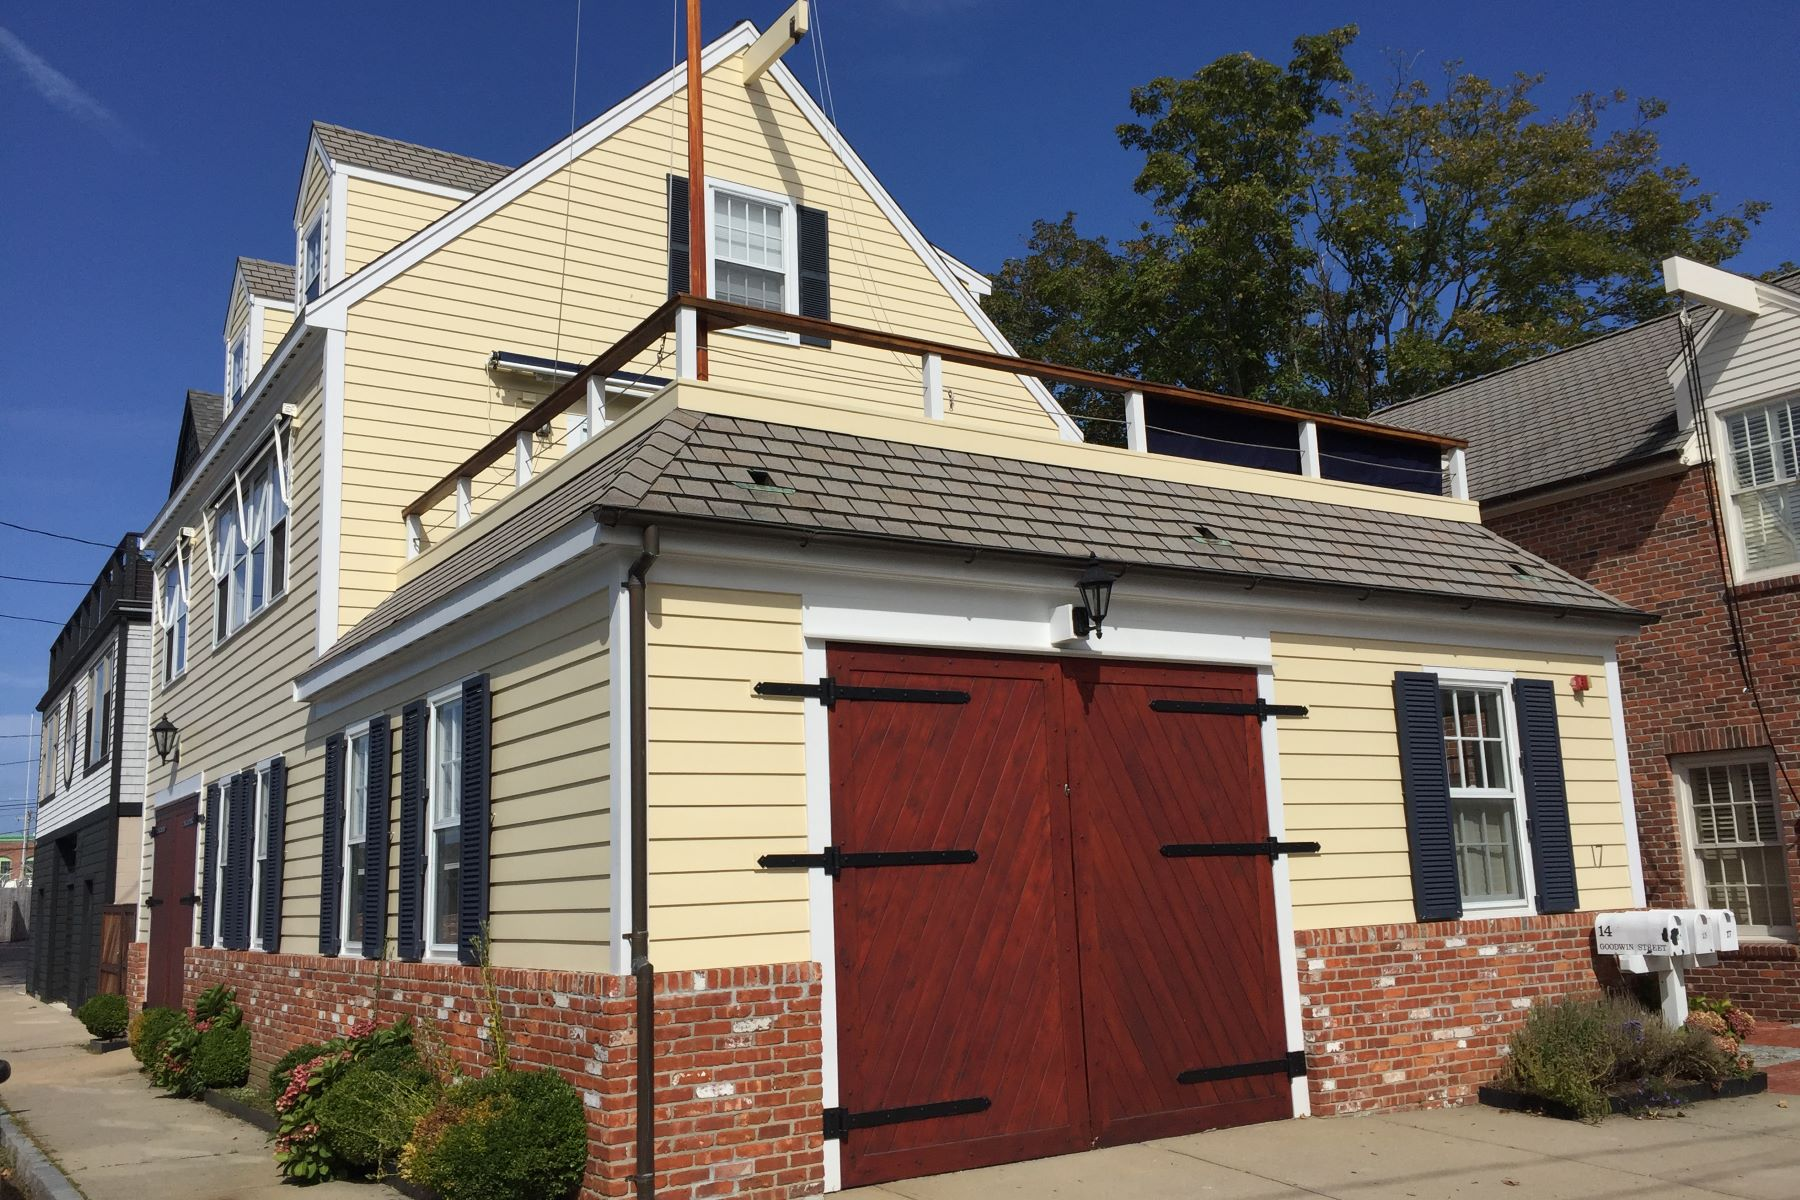 Single Family Home for Sale at Lower Thames Waterfront 17 Goodwin Street Newport, Rhode Island 02840 United States